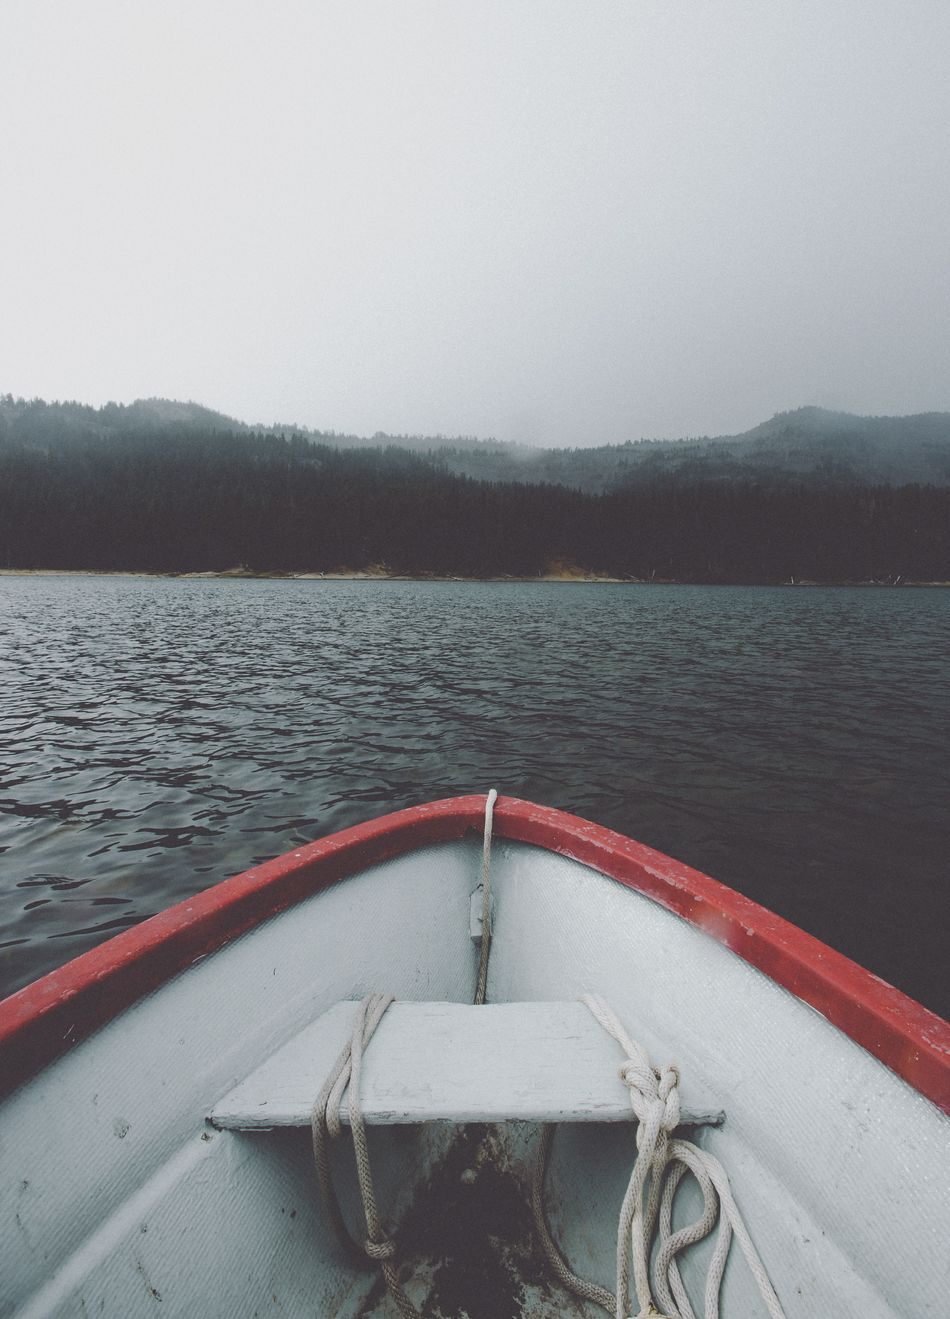 Wishing I could be back on this lake right now Water Nature Day Sky Nautical Vessel Beauty In Nature No People Outdoors Life Belt Pacific Northwest  Central Oregon Lake Canoe Kayak